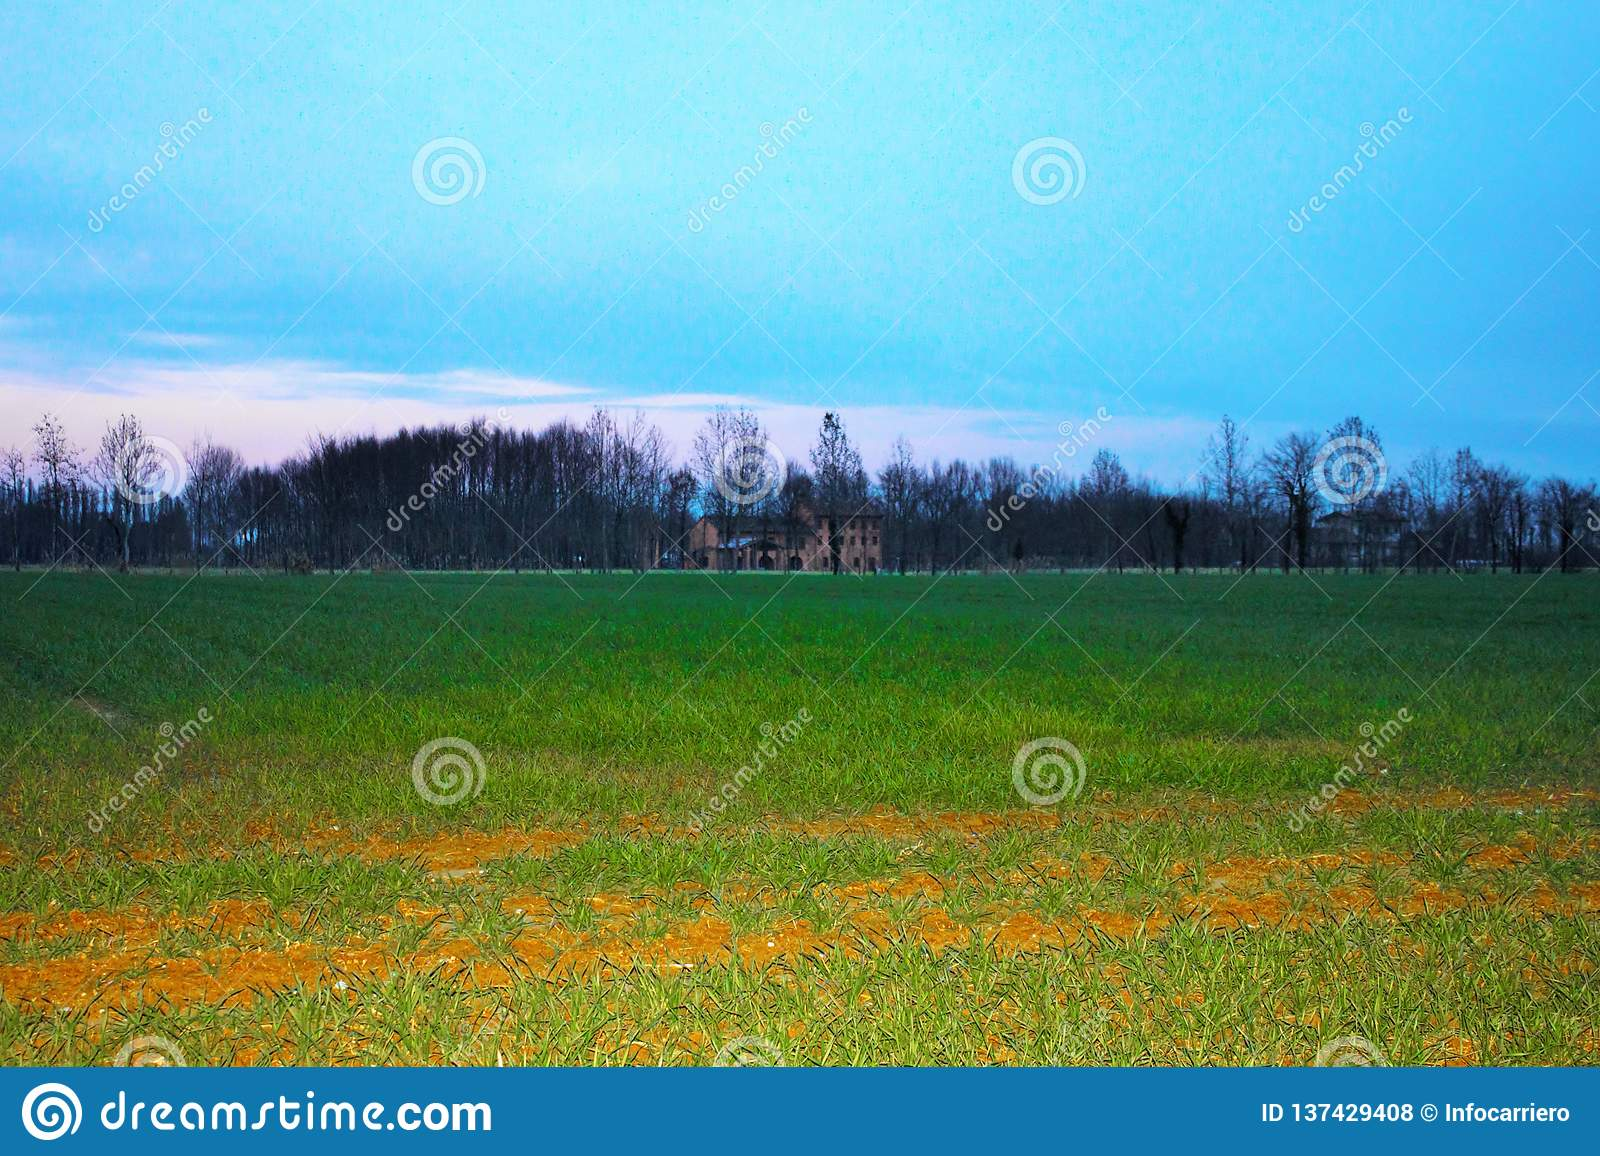 landscape, freshly cultivated field with background the farm and a beautiful blue sky.